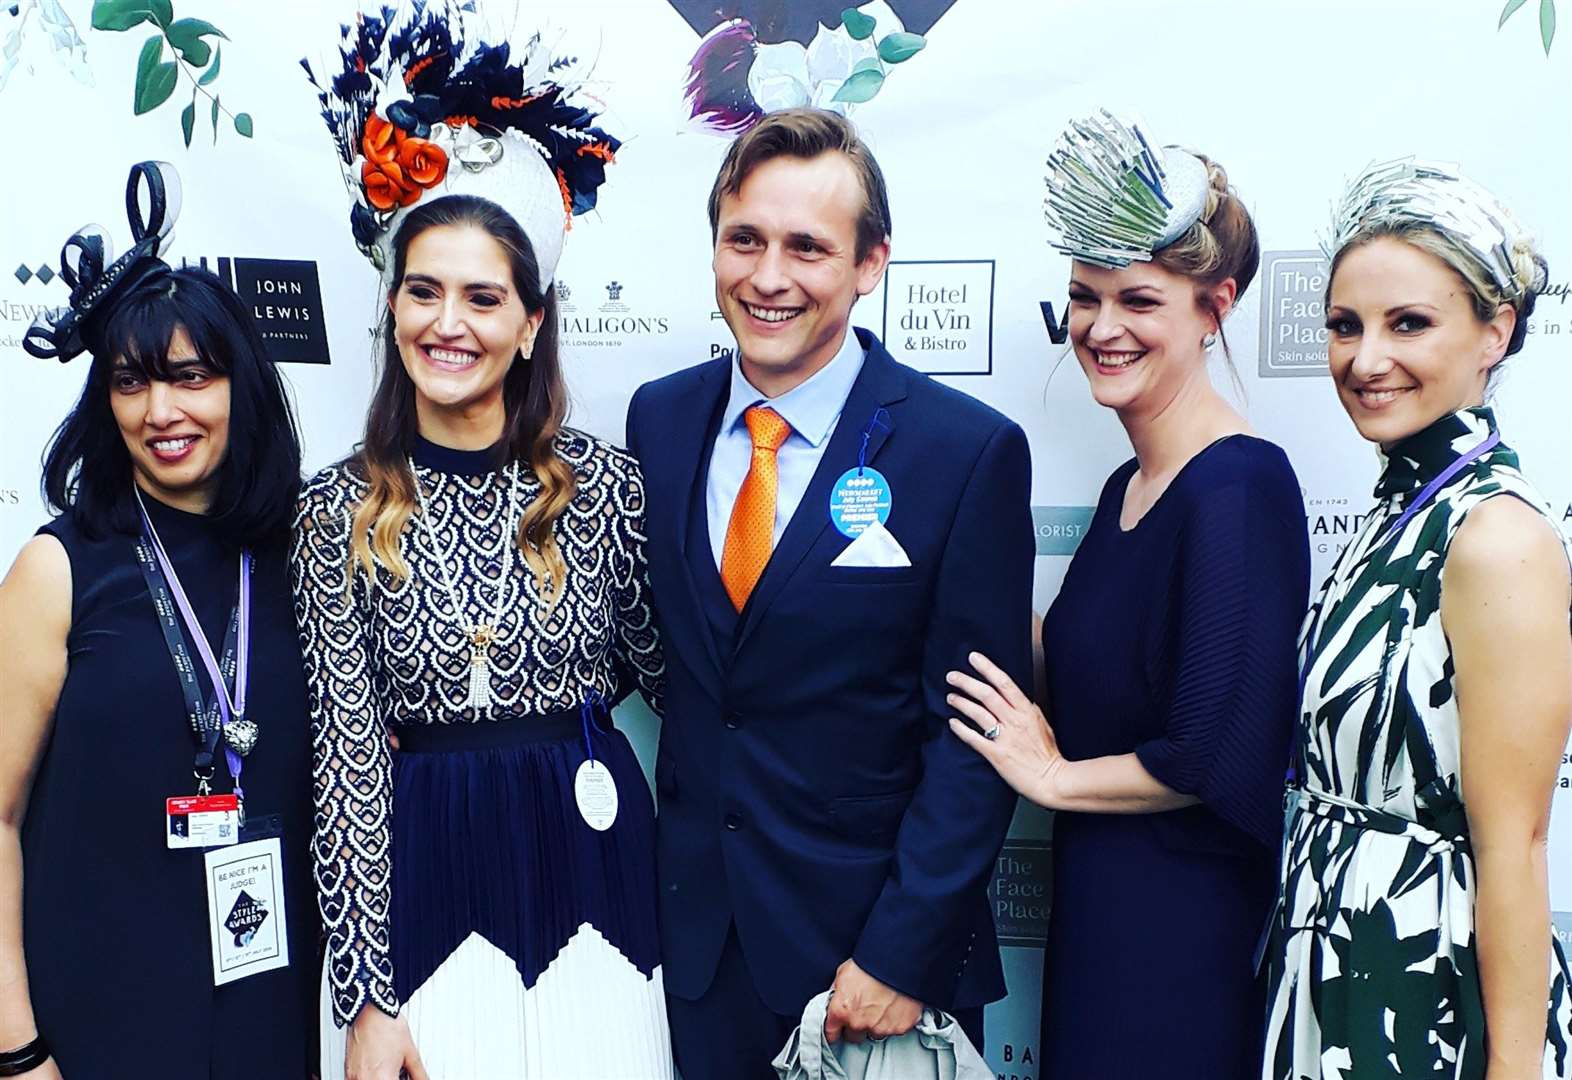 July Festival Style Awards: Here are today's Best Dressed Couple at Newmarket